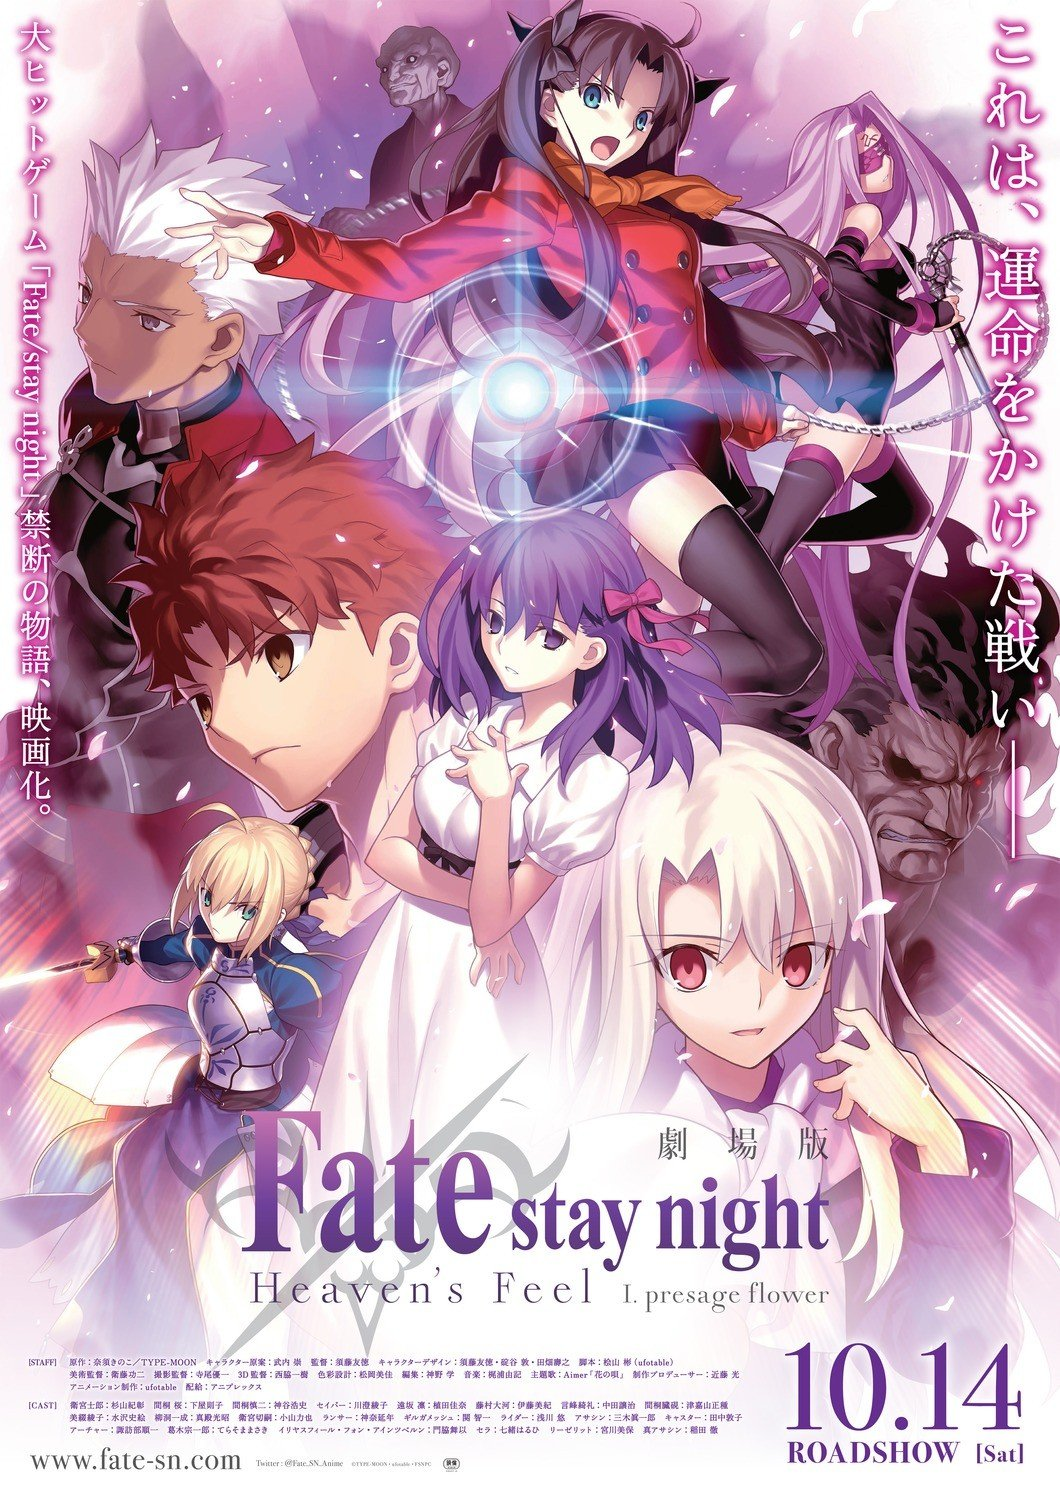 劇場版 Fate/stay night [Heaven's Feel] I.presage flower 剧场版 Fate/stay night [Heaven's Feel] I.presage flower